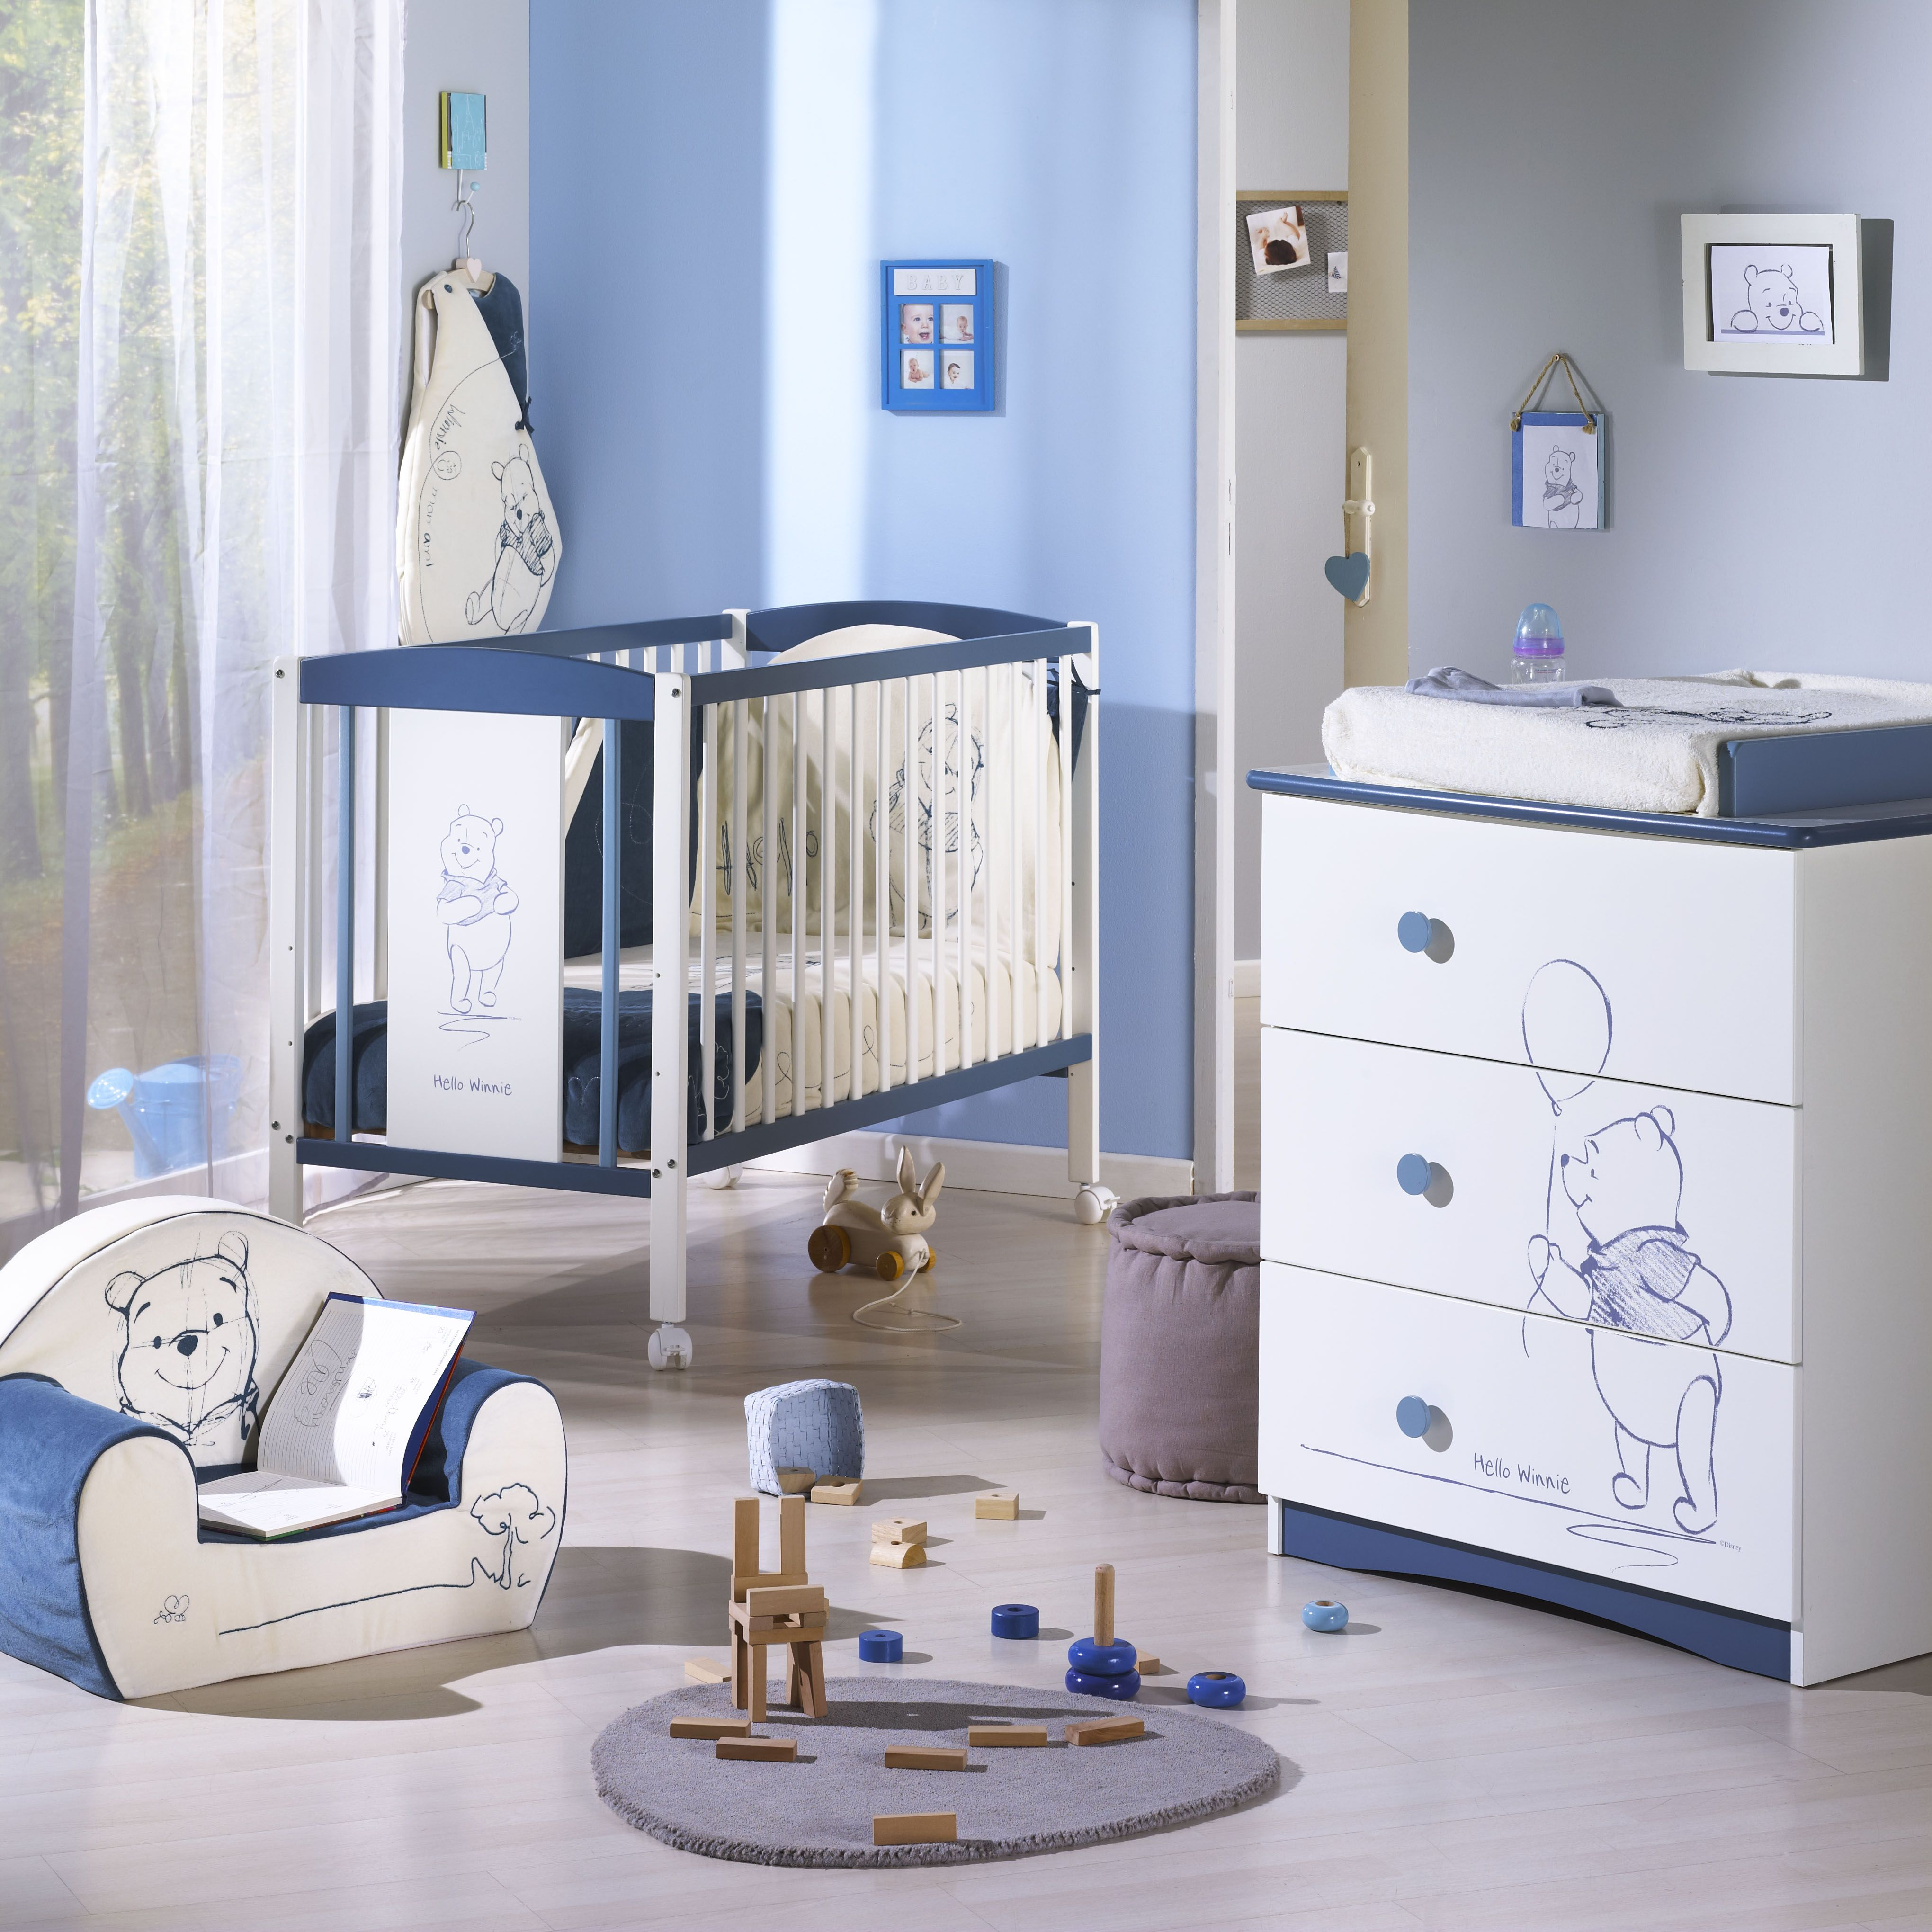 Winnie The Pooh Baby S Room My Nursery Was Pooh Bear Themed And Any Kids I Have Will Get The Same Baby Room Decor Baby Room Themes Winnie The Pooh Nursery